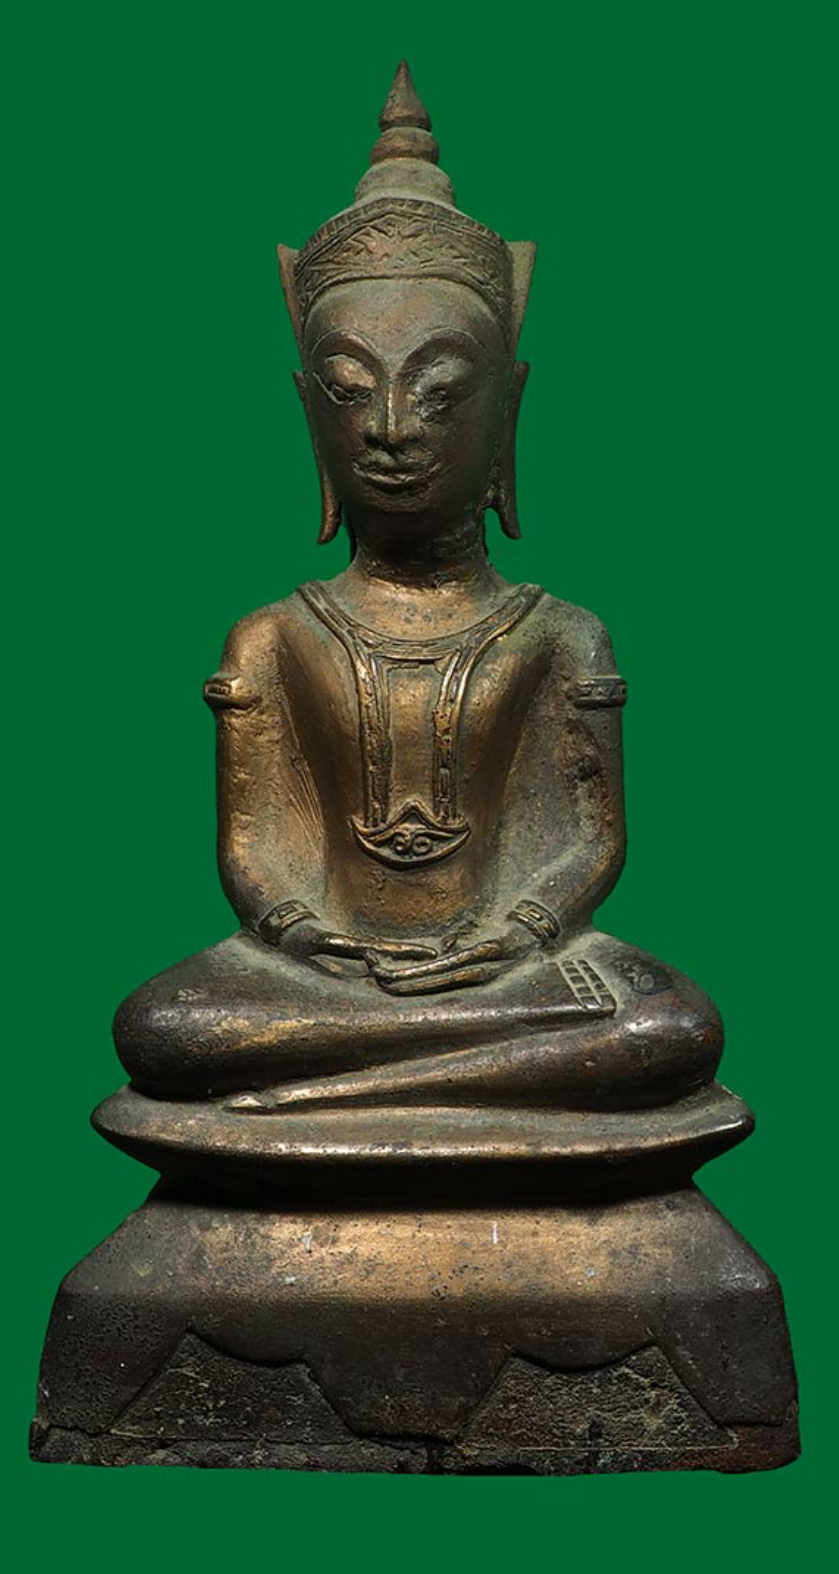 Phra Chai 400 years - Ayuthaya period